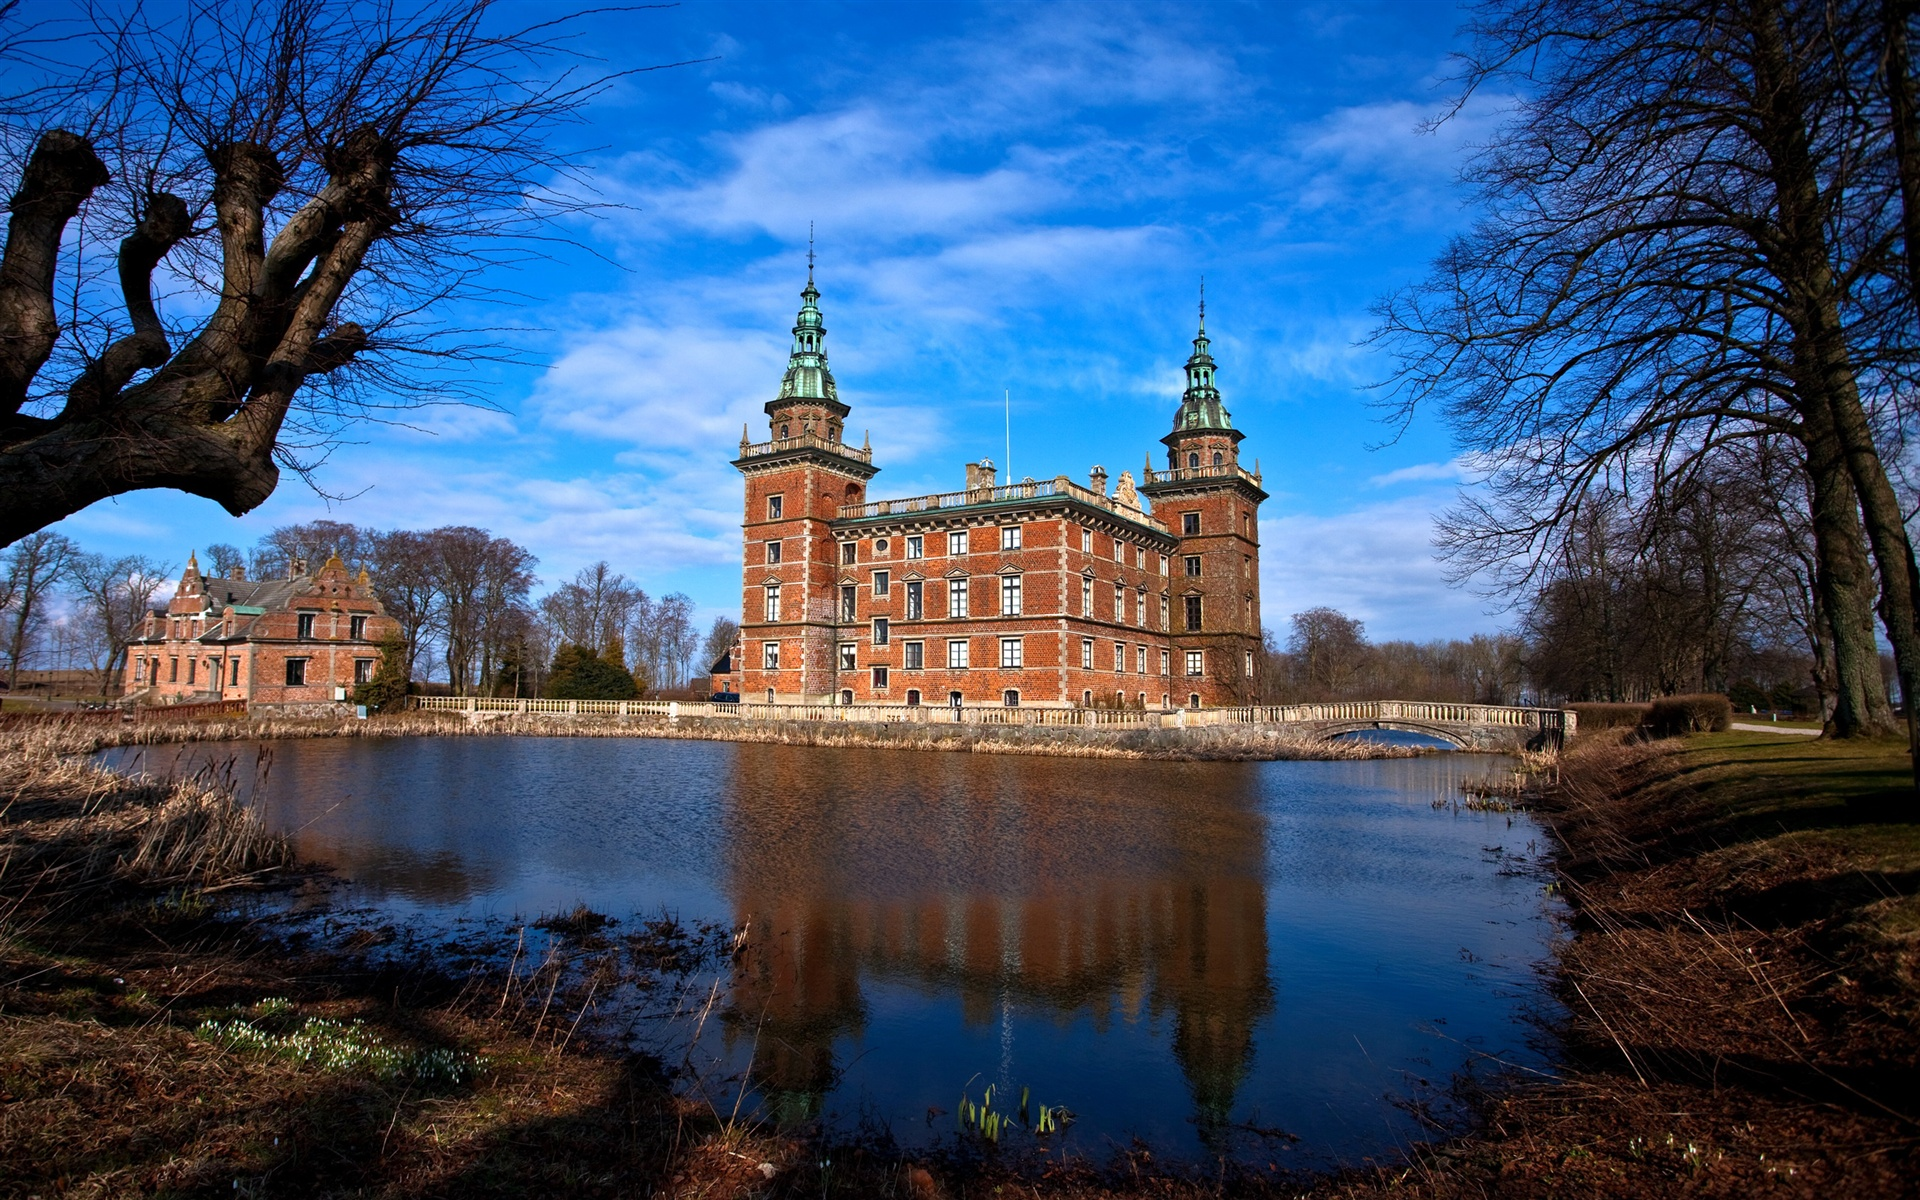 Sweden castle photography wallpaper - 1920x1200